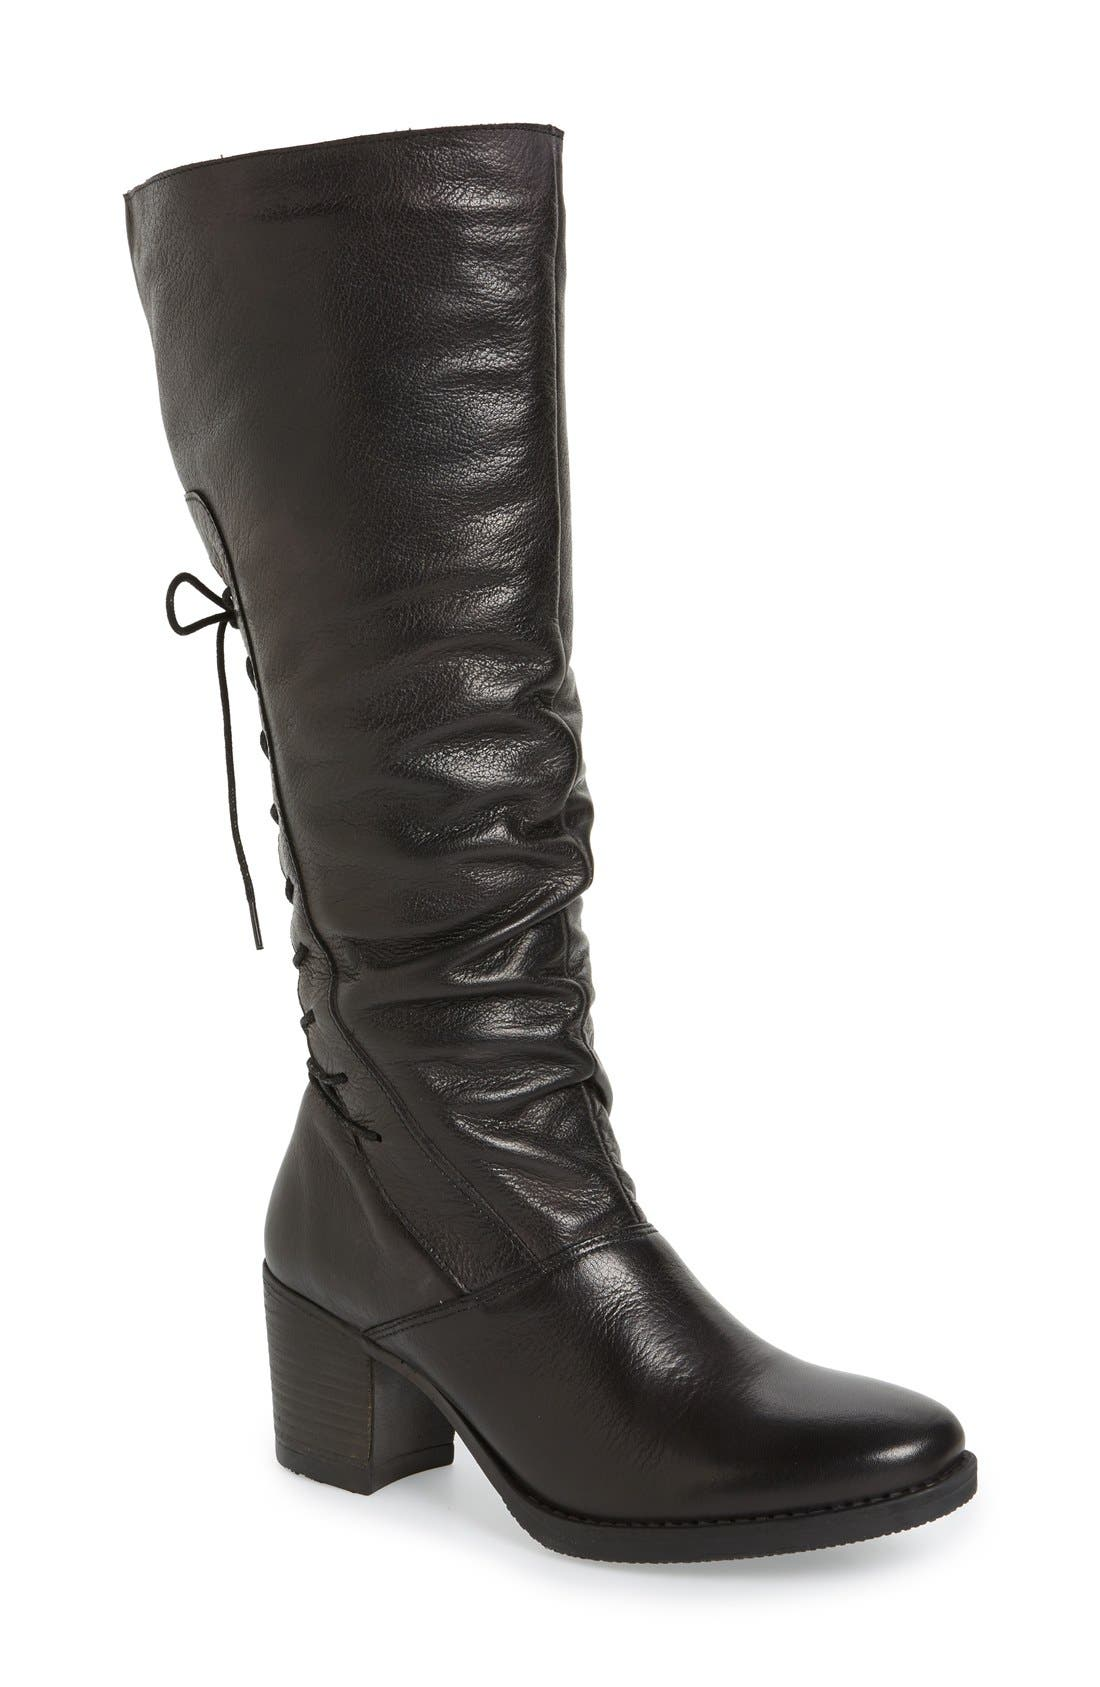 Bos. & Co. 'Fyllis' Waterproof Boot (Women)